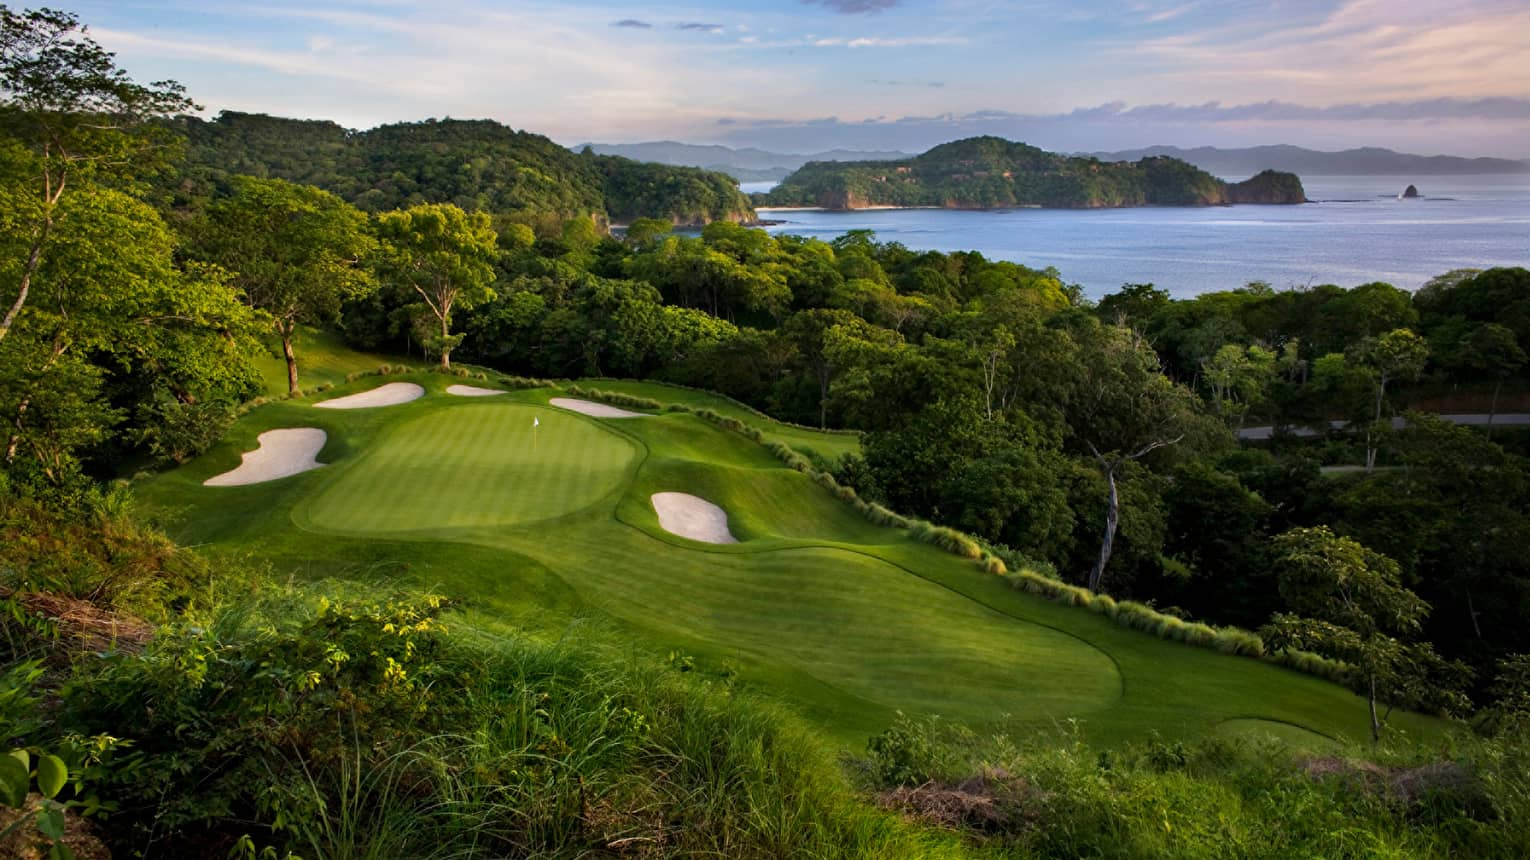 Looking down on golf course green, sand traps on hill overlooking tropical forest, ocean